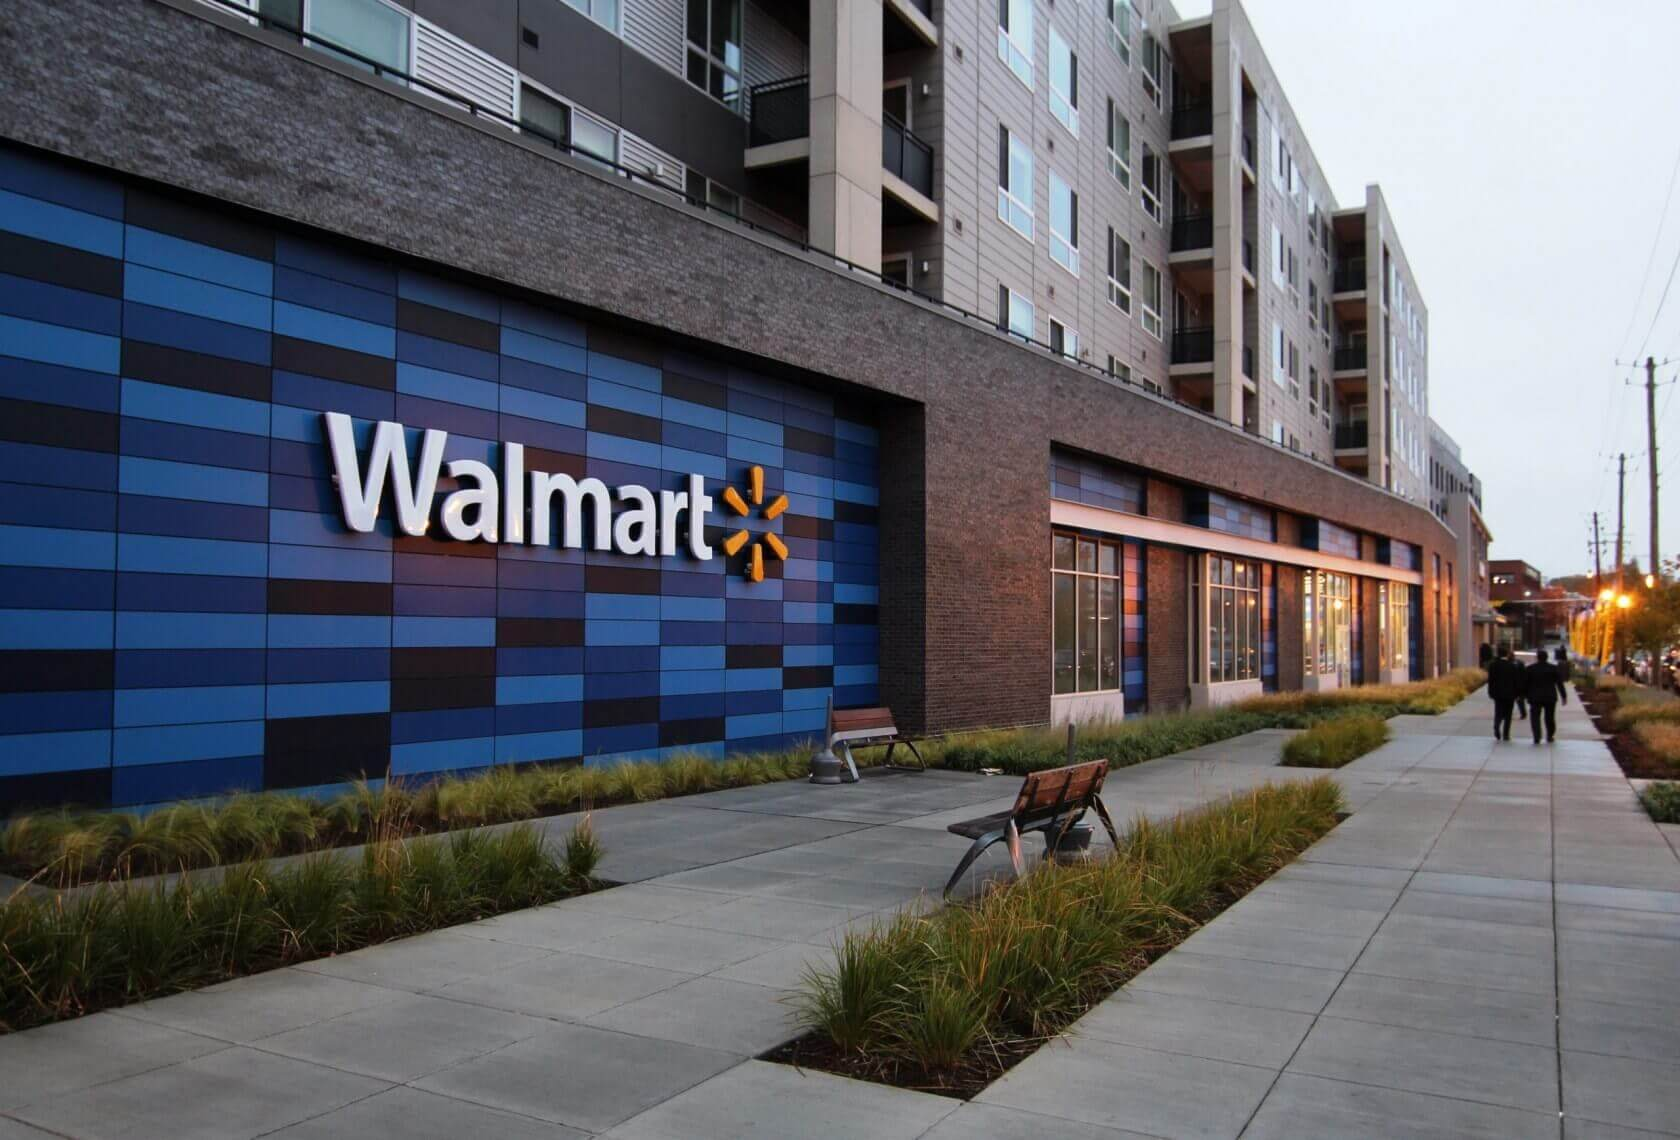 Walmart to remodel 19 IN stores